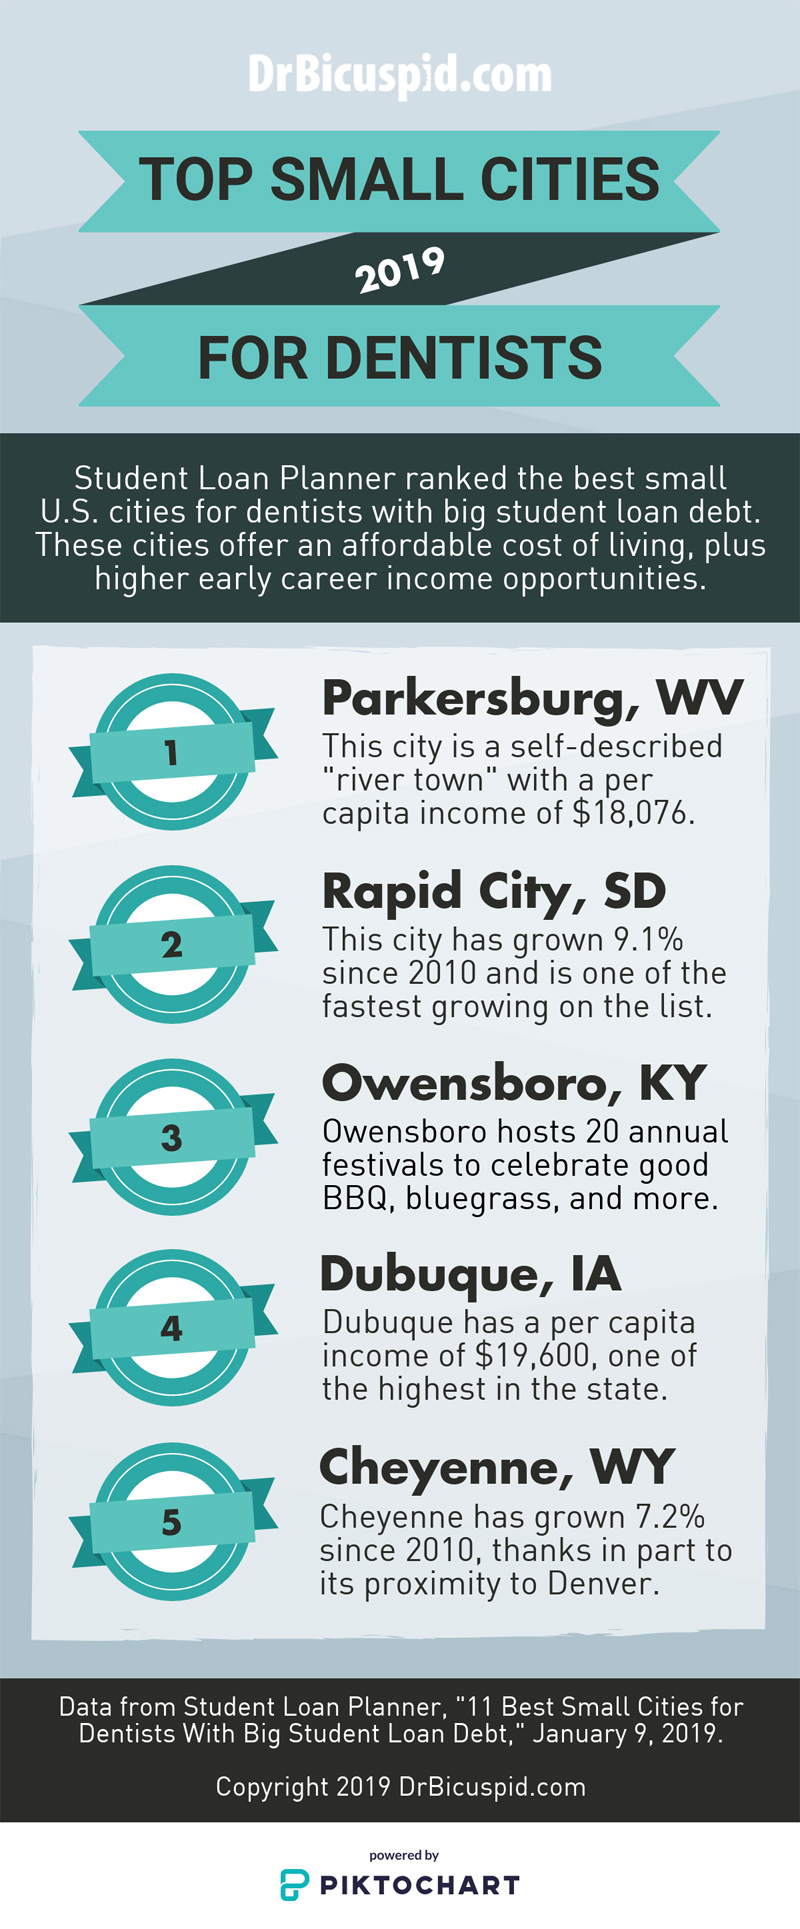 Top small cities for dentists